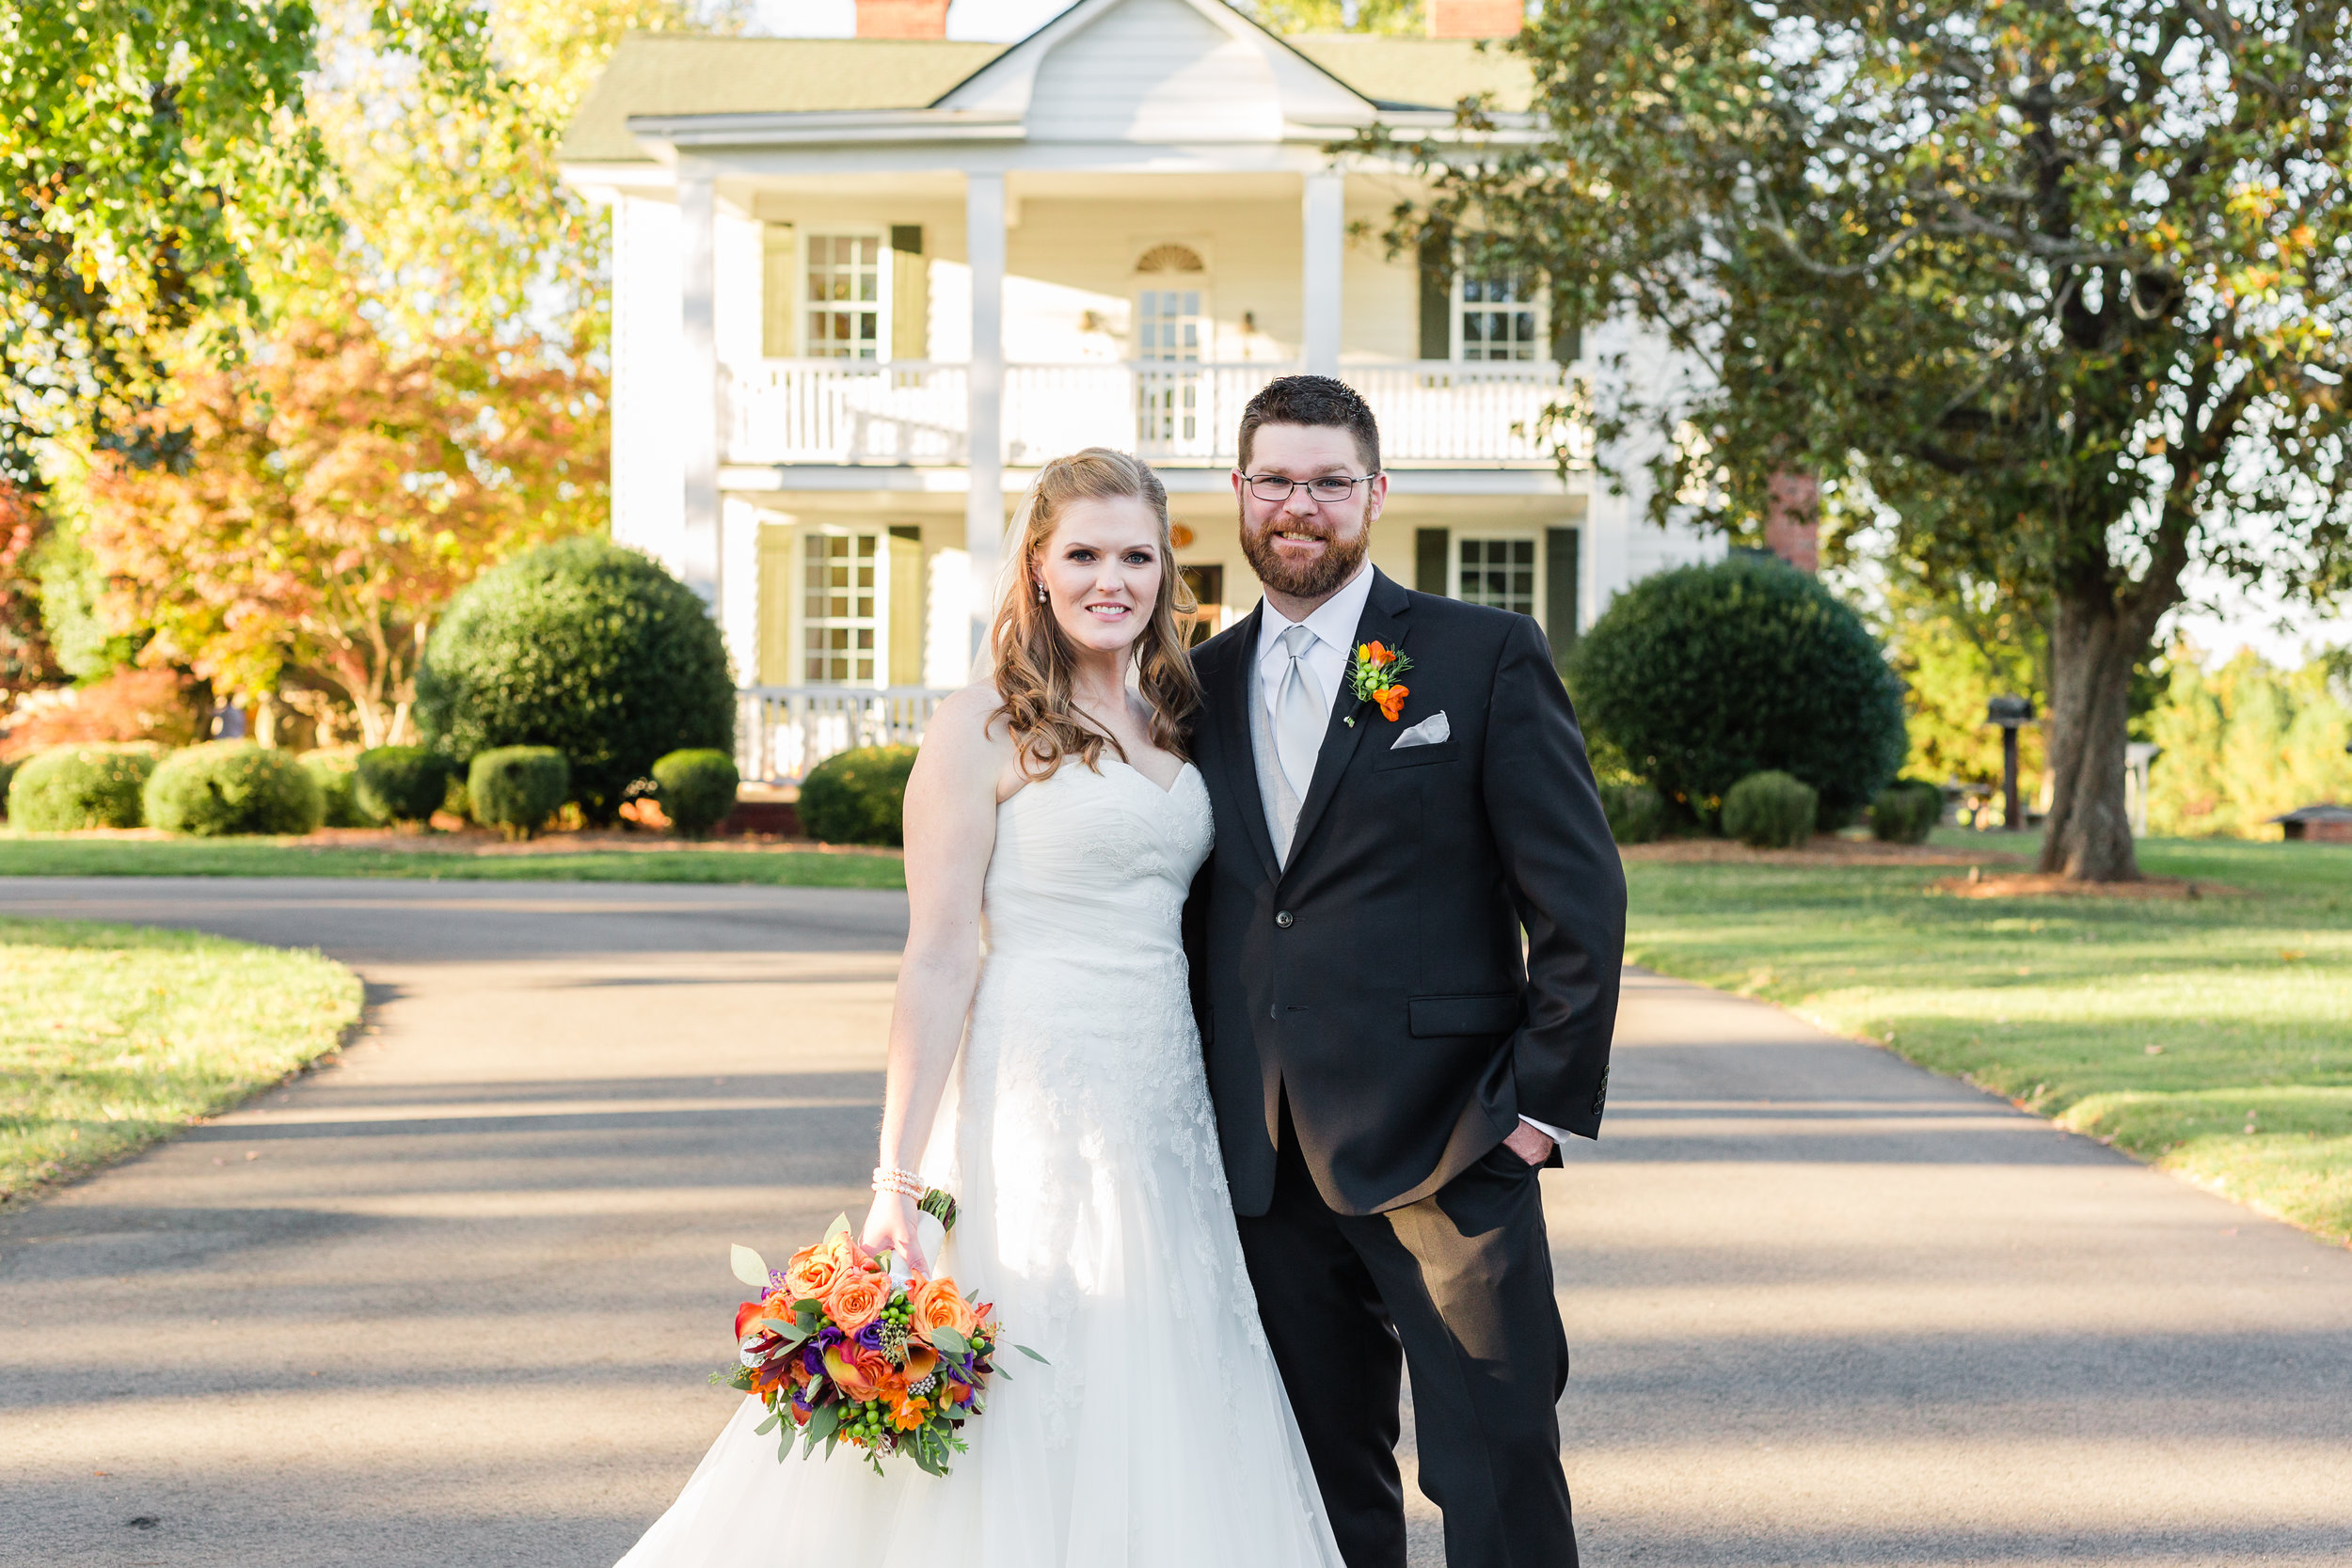 Langtree Plantation, Mooresville, NC Photography: Courtney Saul Photography